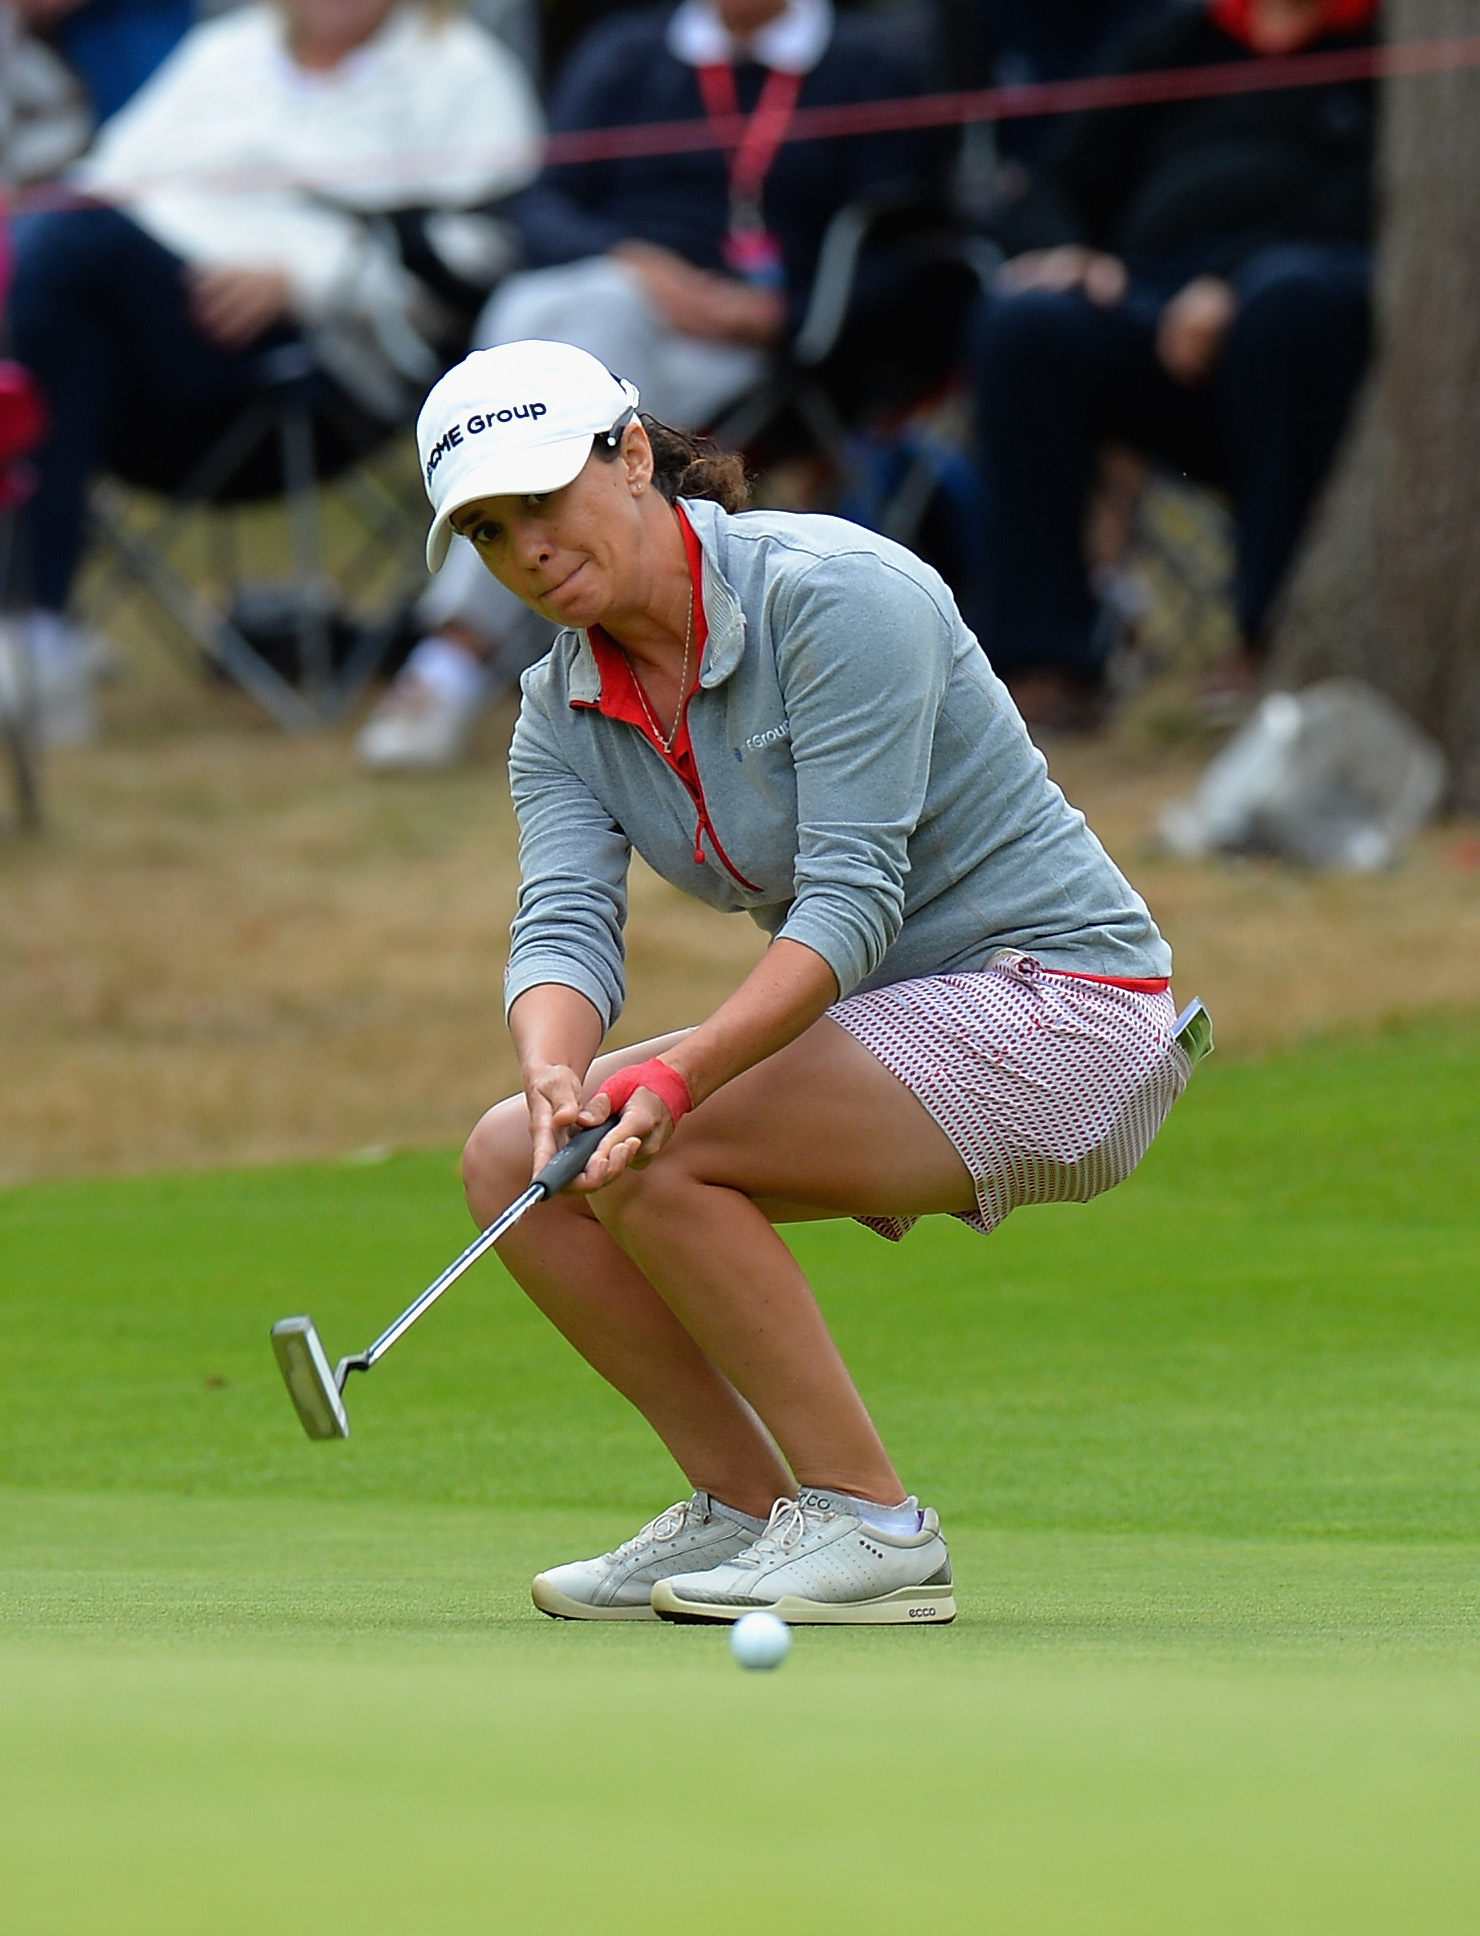 WOBURN, ENGLAND - JULY 31: Mo Martin of USA reacts as she misses a birdie chance on the 17th green during the Ricoh Women's British Open - Day Four at Woburn Golf Club on July 31, 2016 in Woburn, England. (Photo by Tony Marshall/Getty Images)